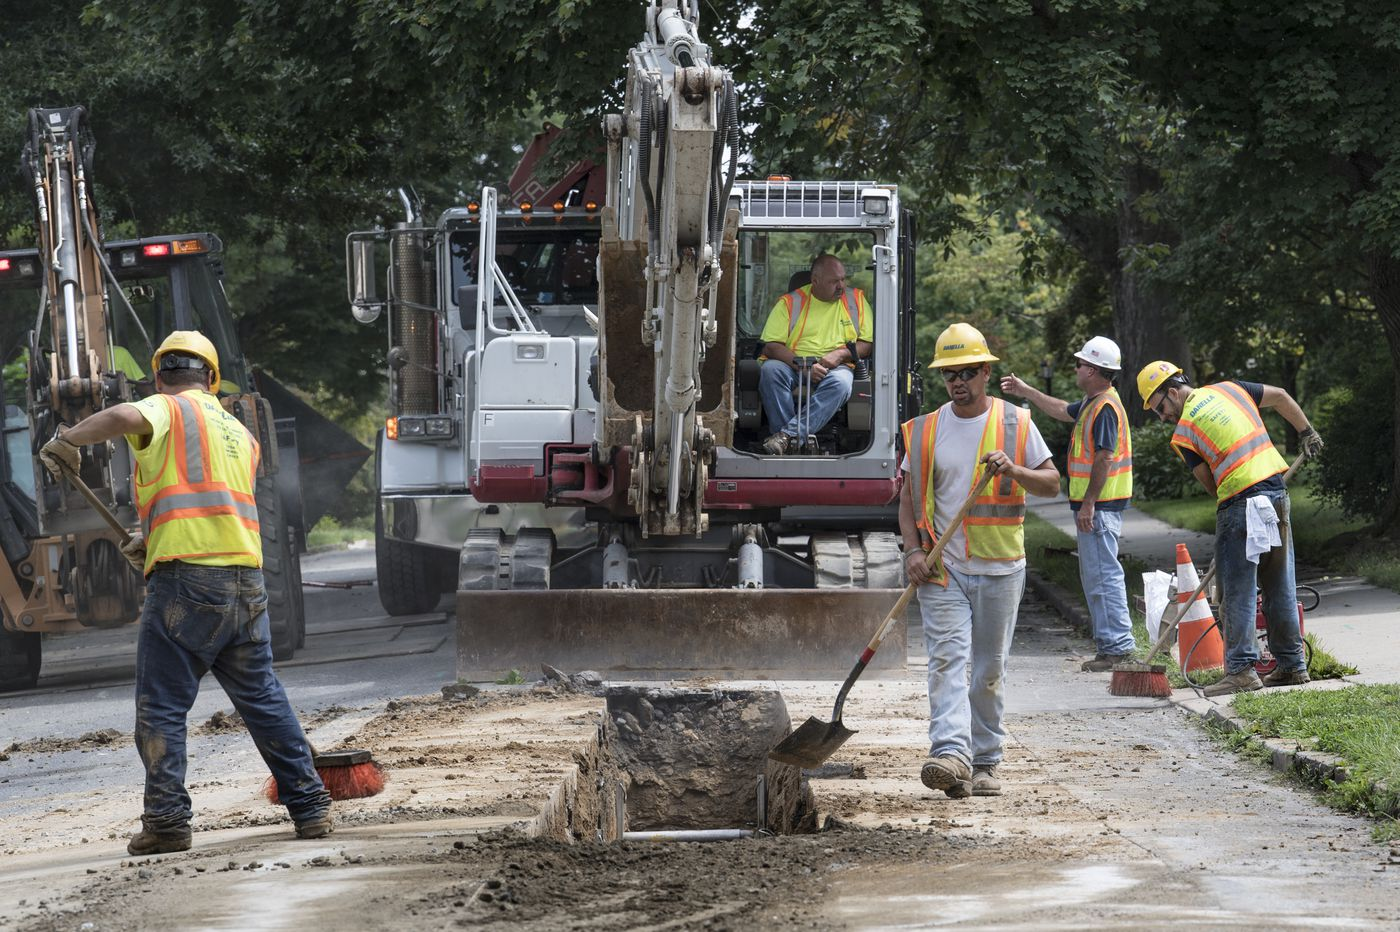 'Unholy alliance': Aqua sues to block $60M Chester bailout as it pursues takeover of public water system